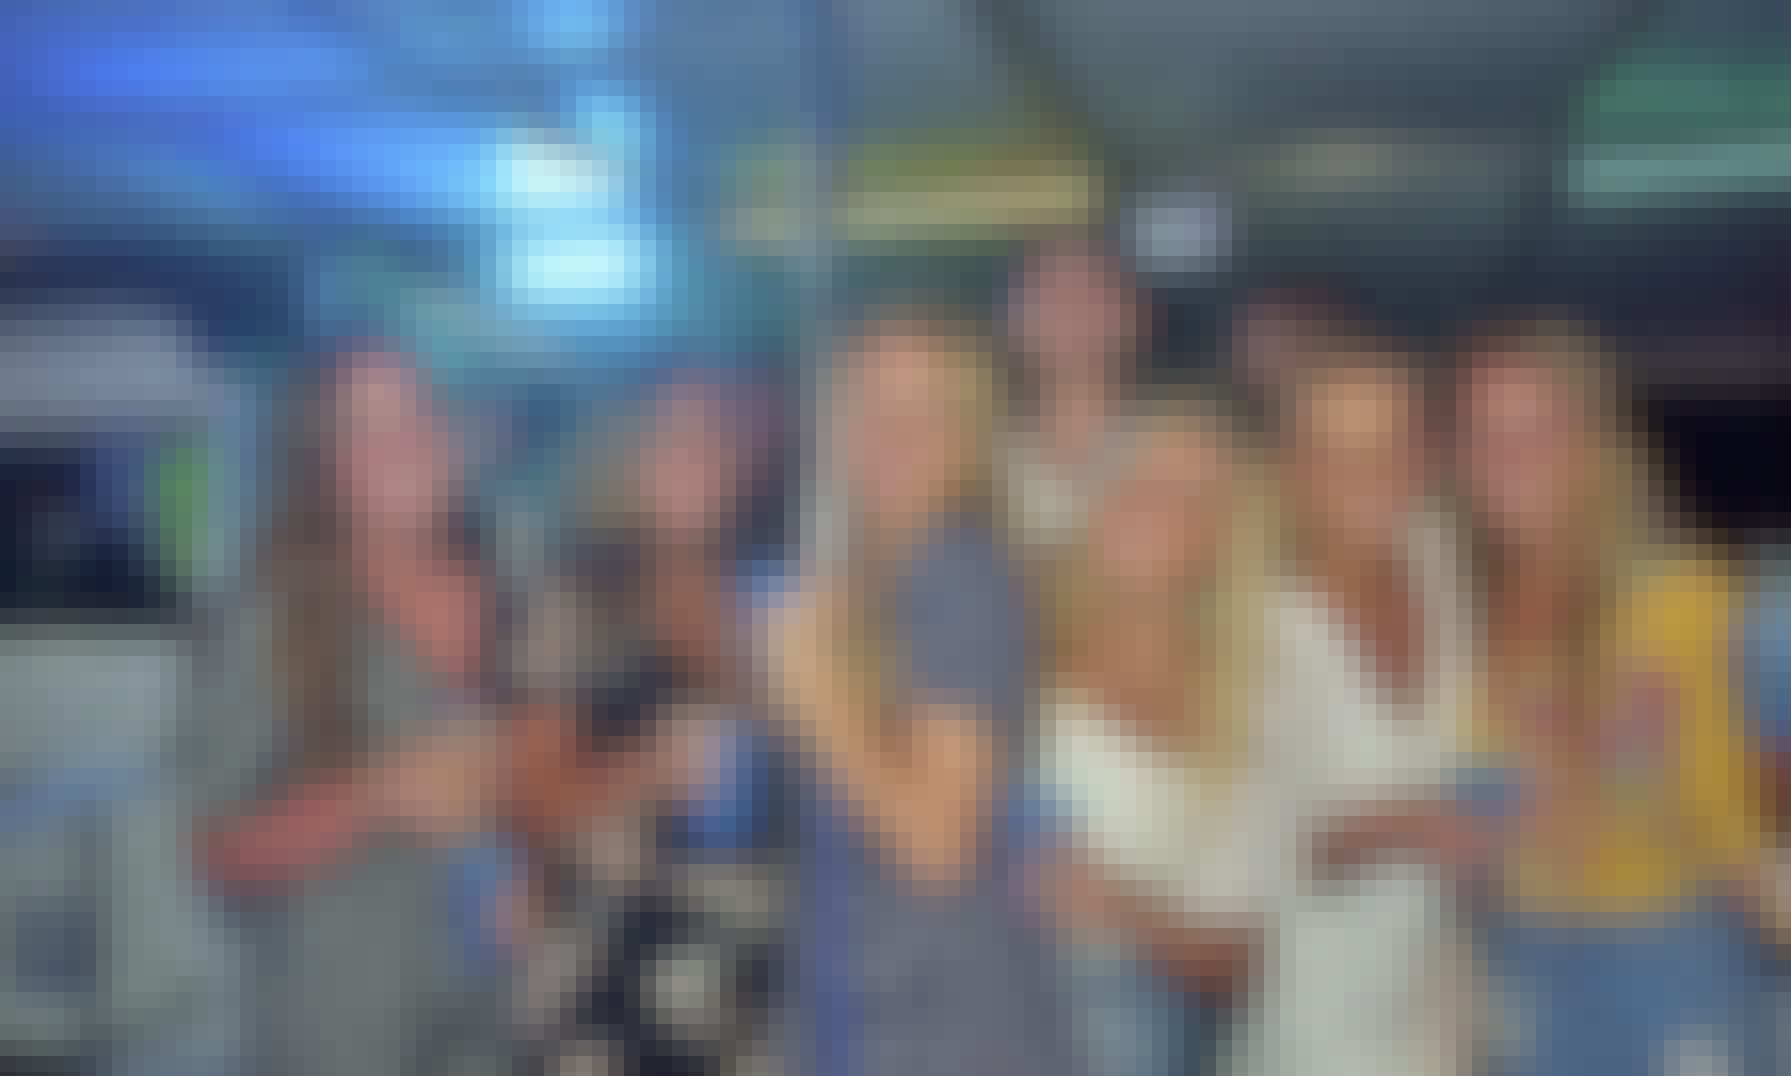 Weekend Booze & DJ Adults Only Cruise in Cabo San Lucas, Baja California Sur